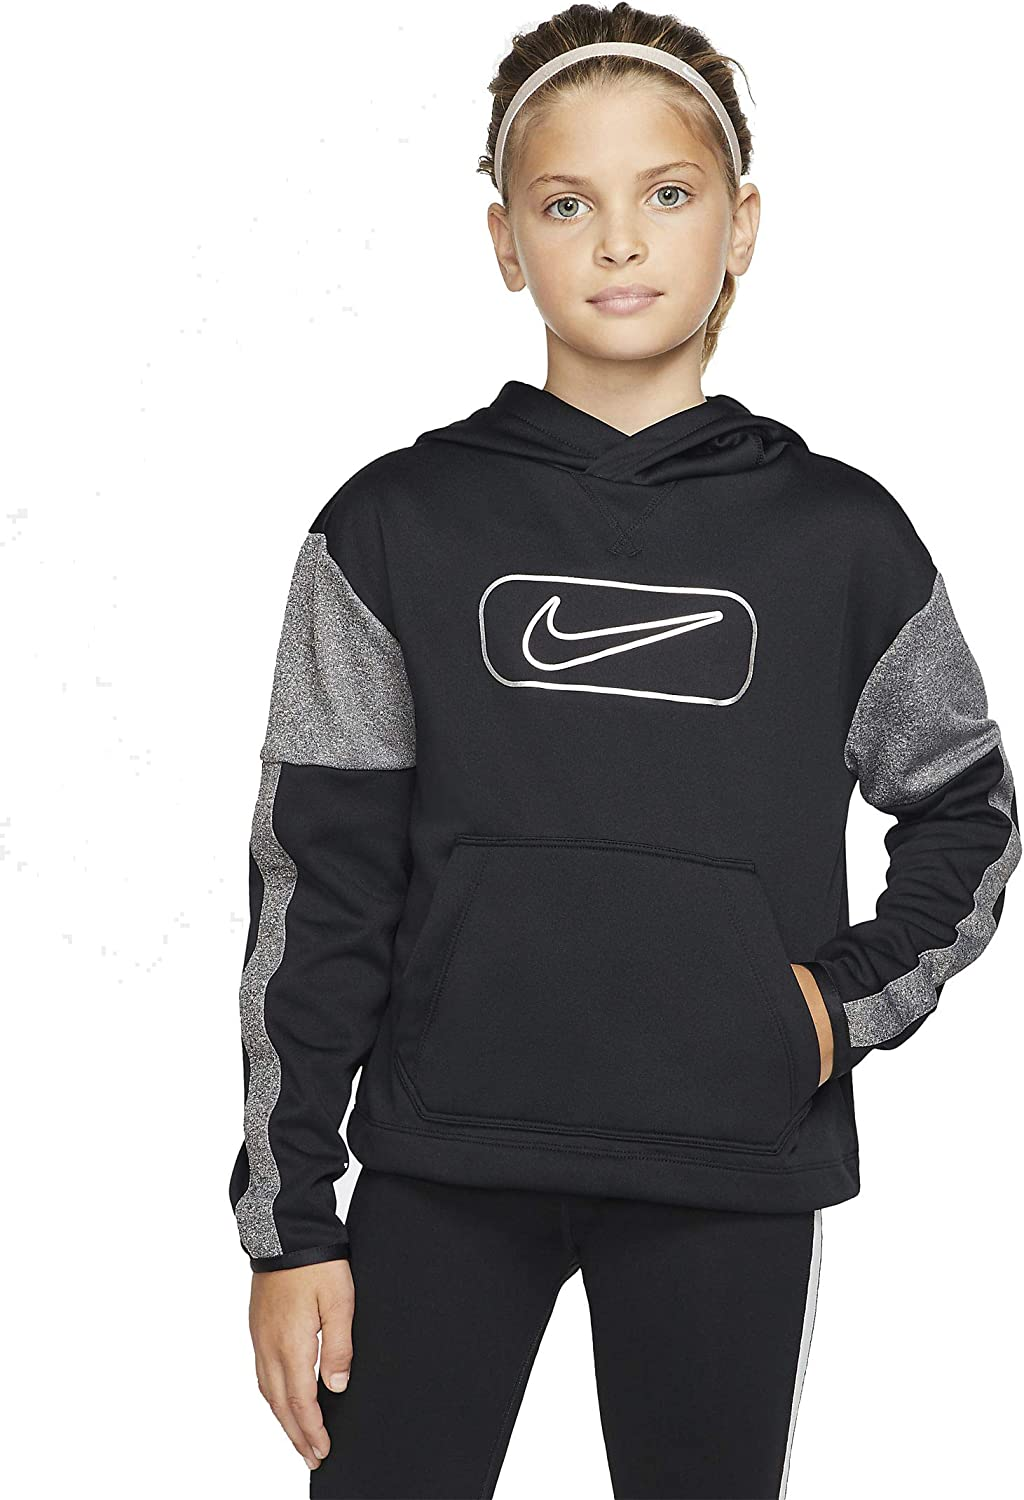 Nike Girl's (Big Kids) Therma-Fit Pullover Training Hoodie - Black (X-Large)